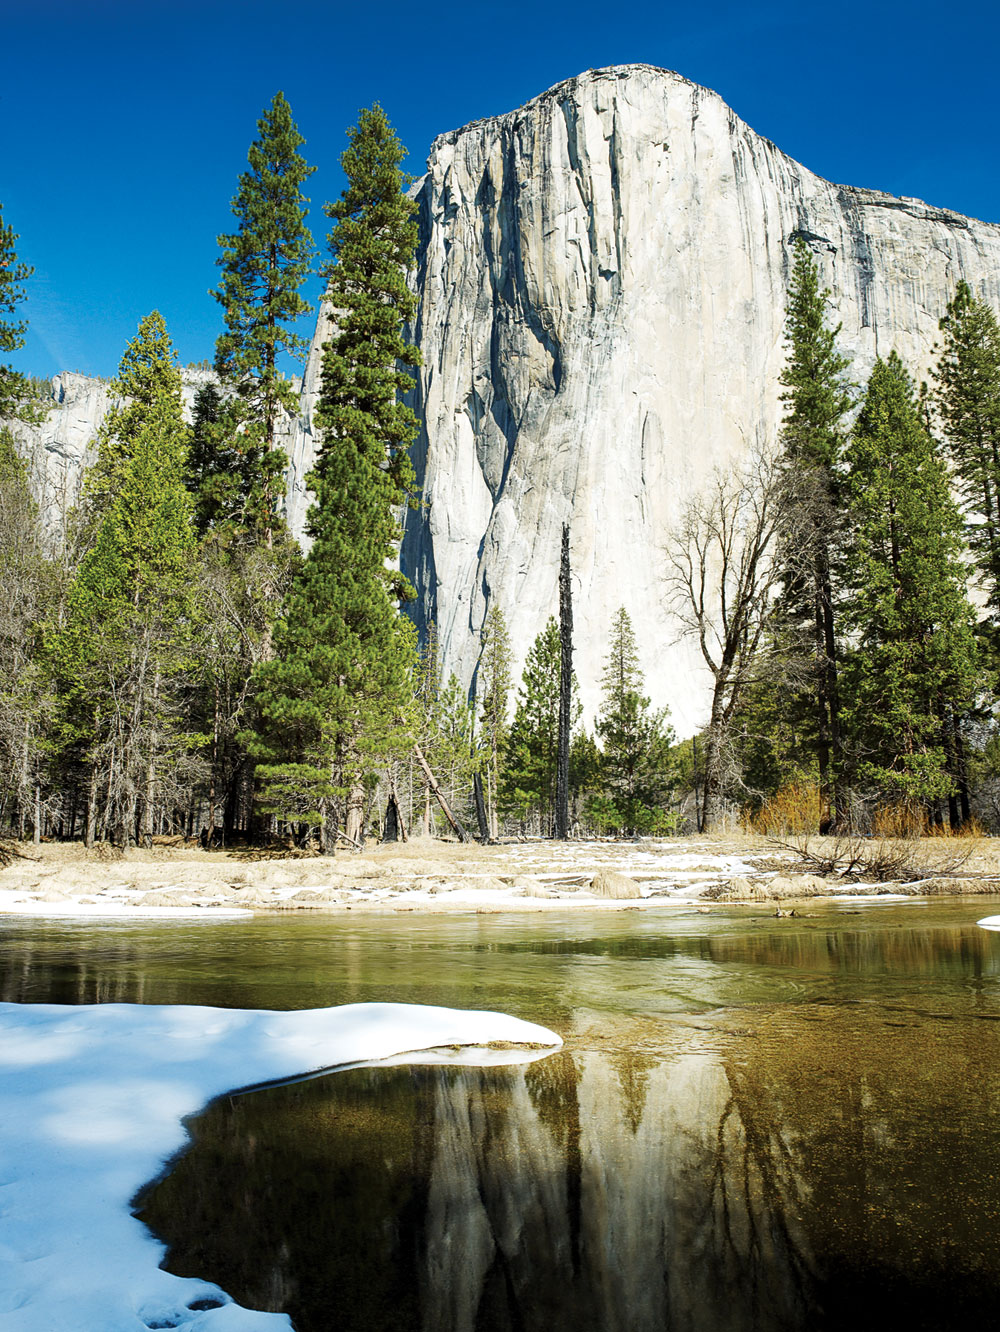 5 Things to Do in Yosemite with a Toddler